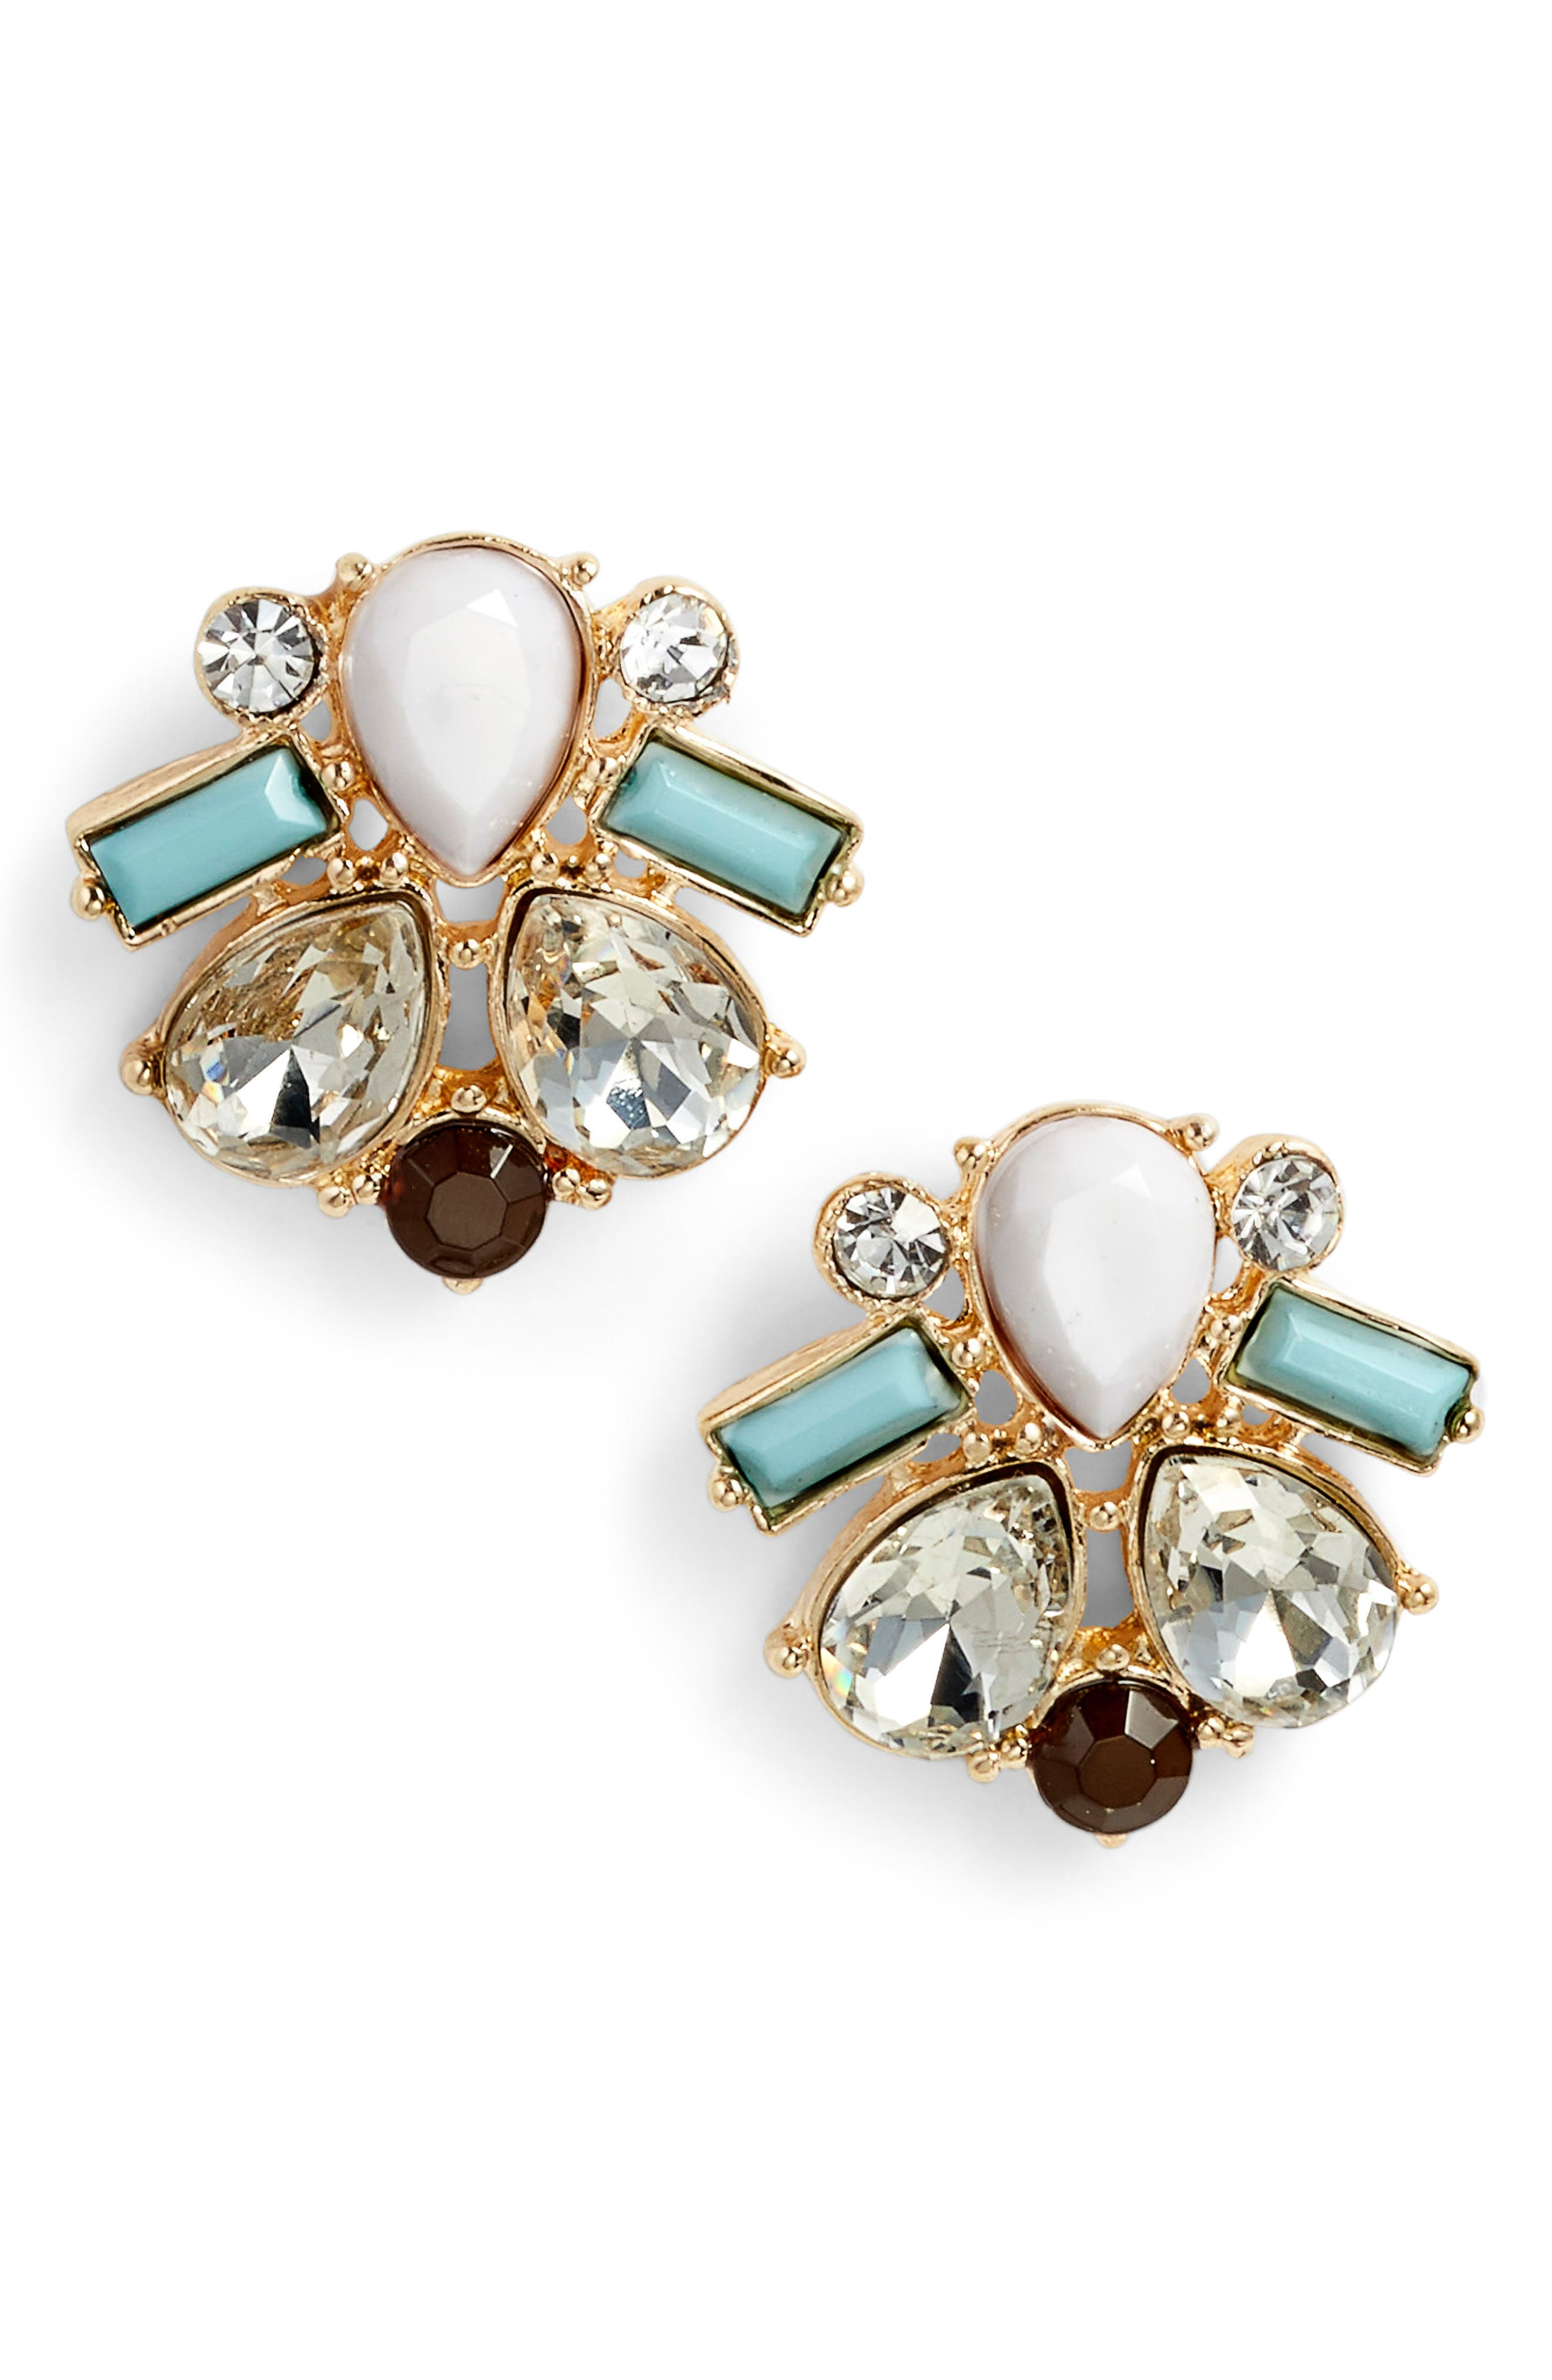 Crystal & Stone Stud Earrings,                         Main,                         color, White/ Mint/ Gold